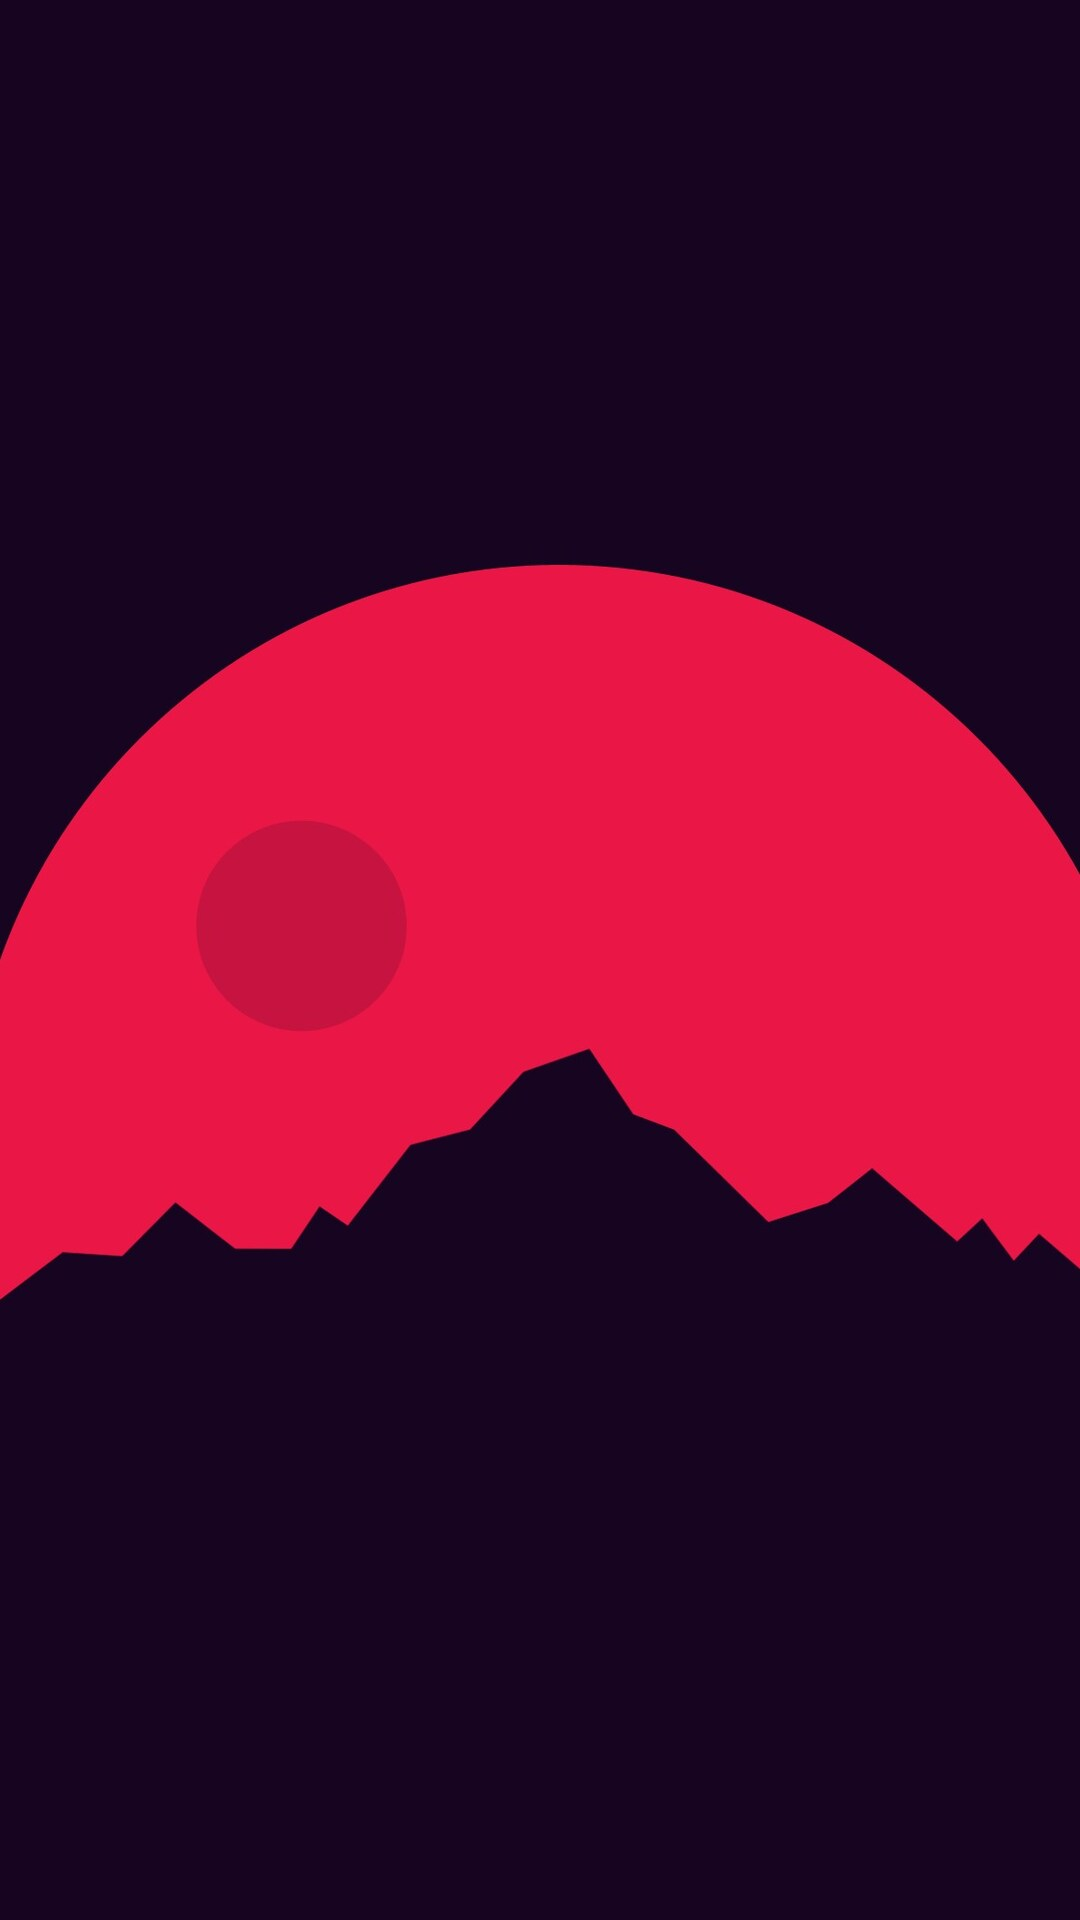 1080x1920 Minimalism Mountains Red Iphone 7,6s,6 Plus ...